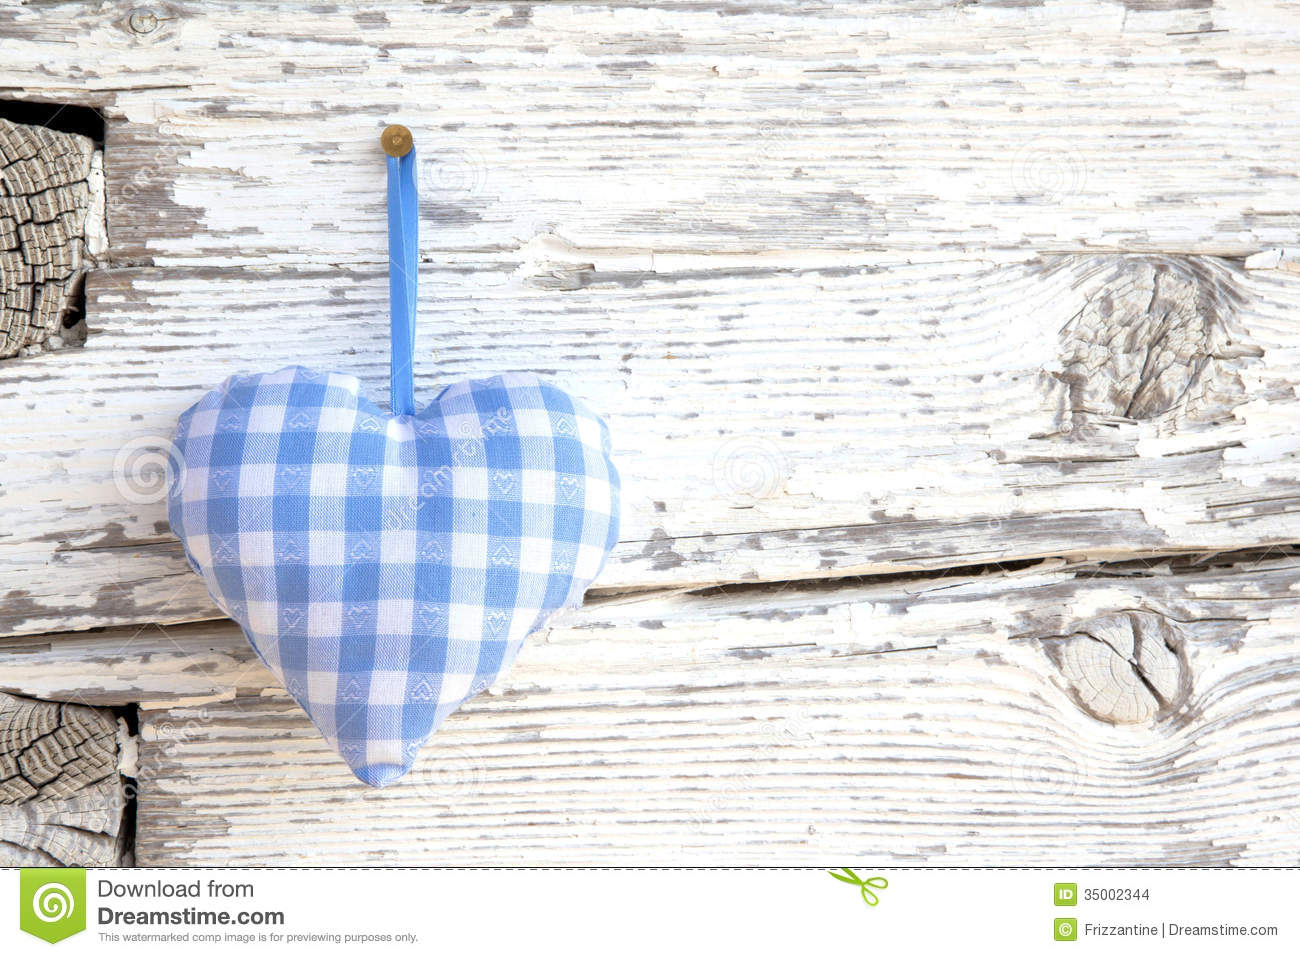 Romantic blue/white checkered heart shape hanging above white wooden surface on a nail- white wooden shabby chic background for